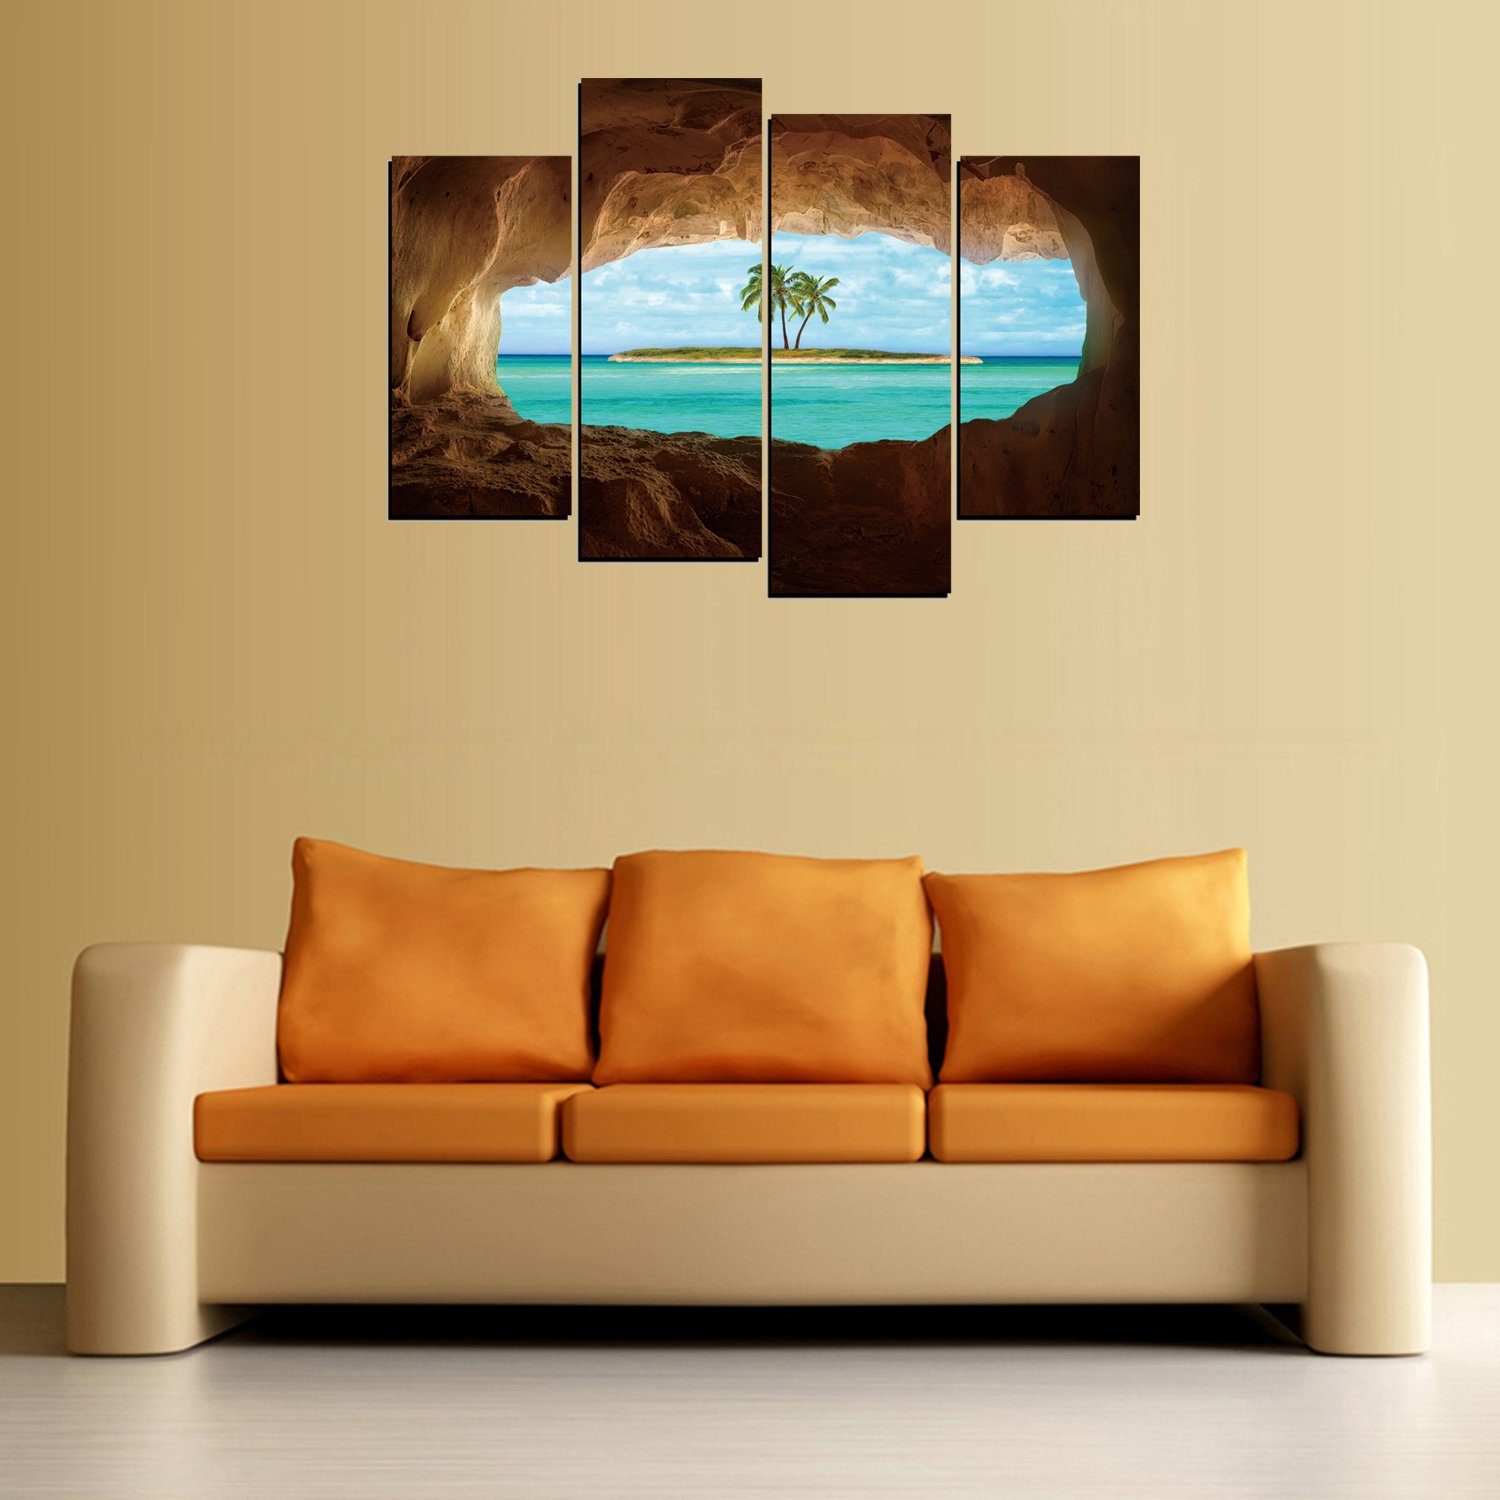 Amazon.com: Modern Home and Office Wall Decor 4 Panels Canvas Wall ...